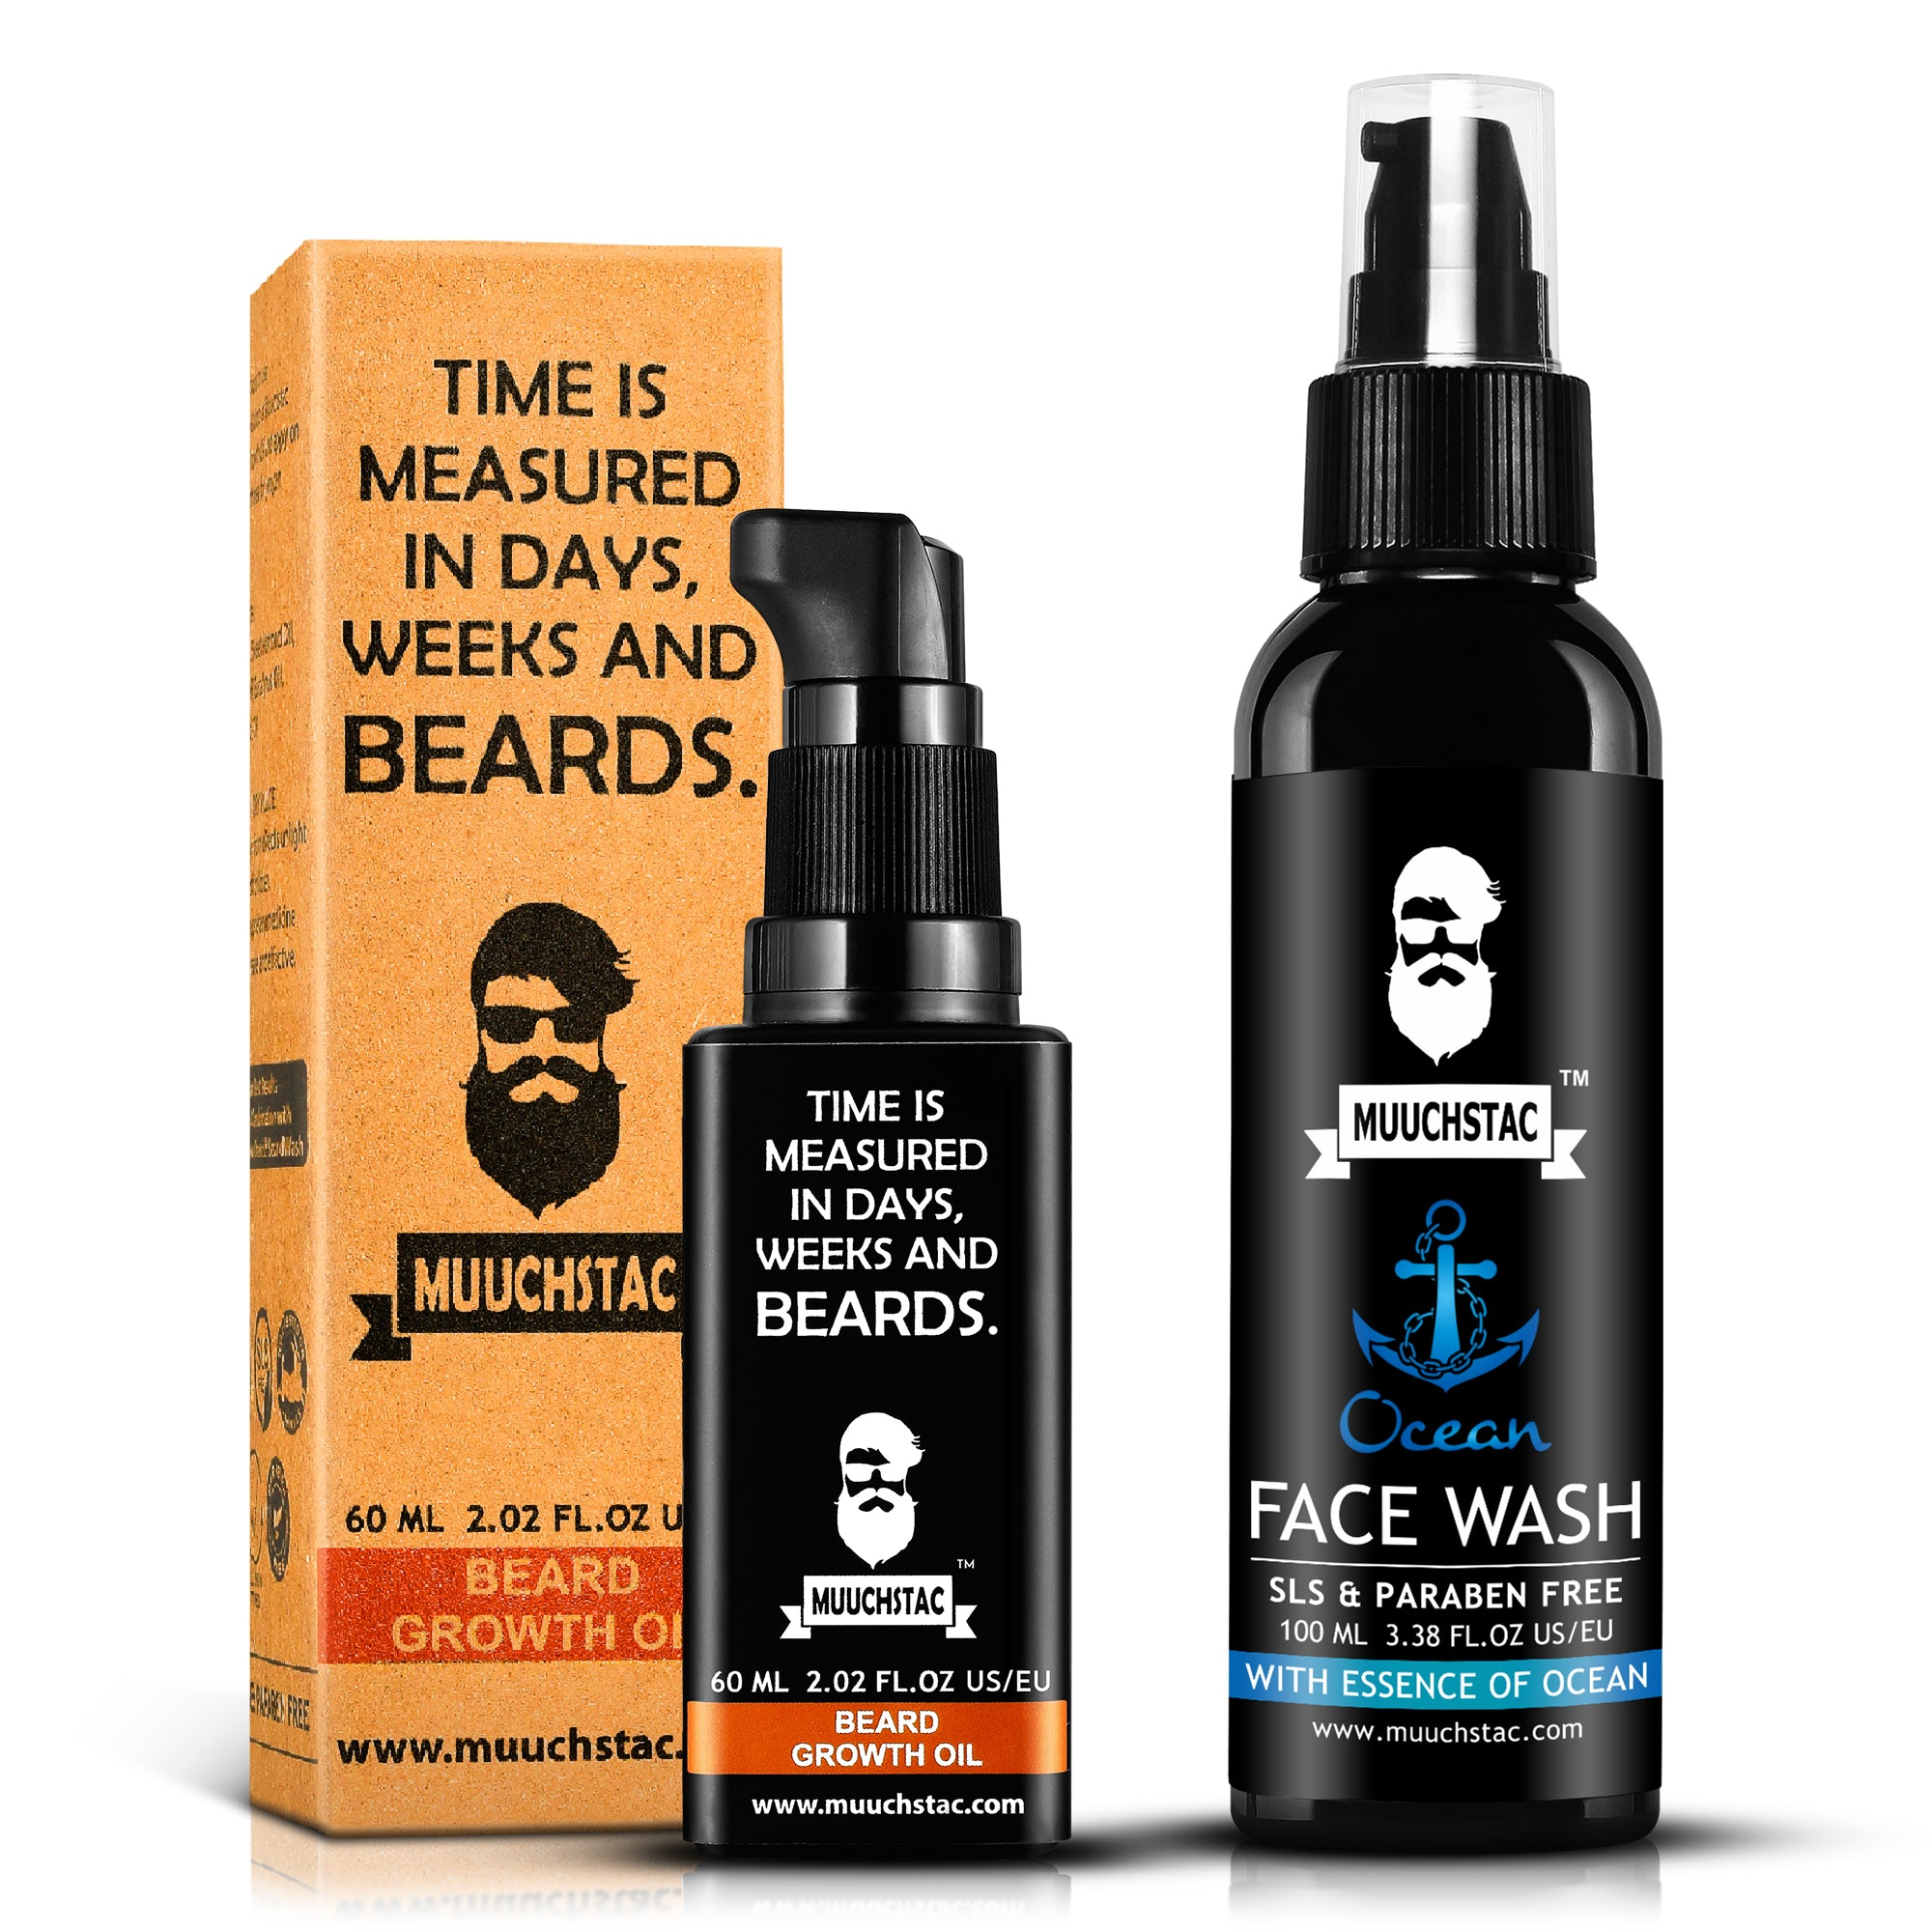 Muuchstac Men's Beard Growth & Face Care Kit - Ayurvedic Beard Growth Oil, 60ml & Ocean Face Wash, 100ml